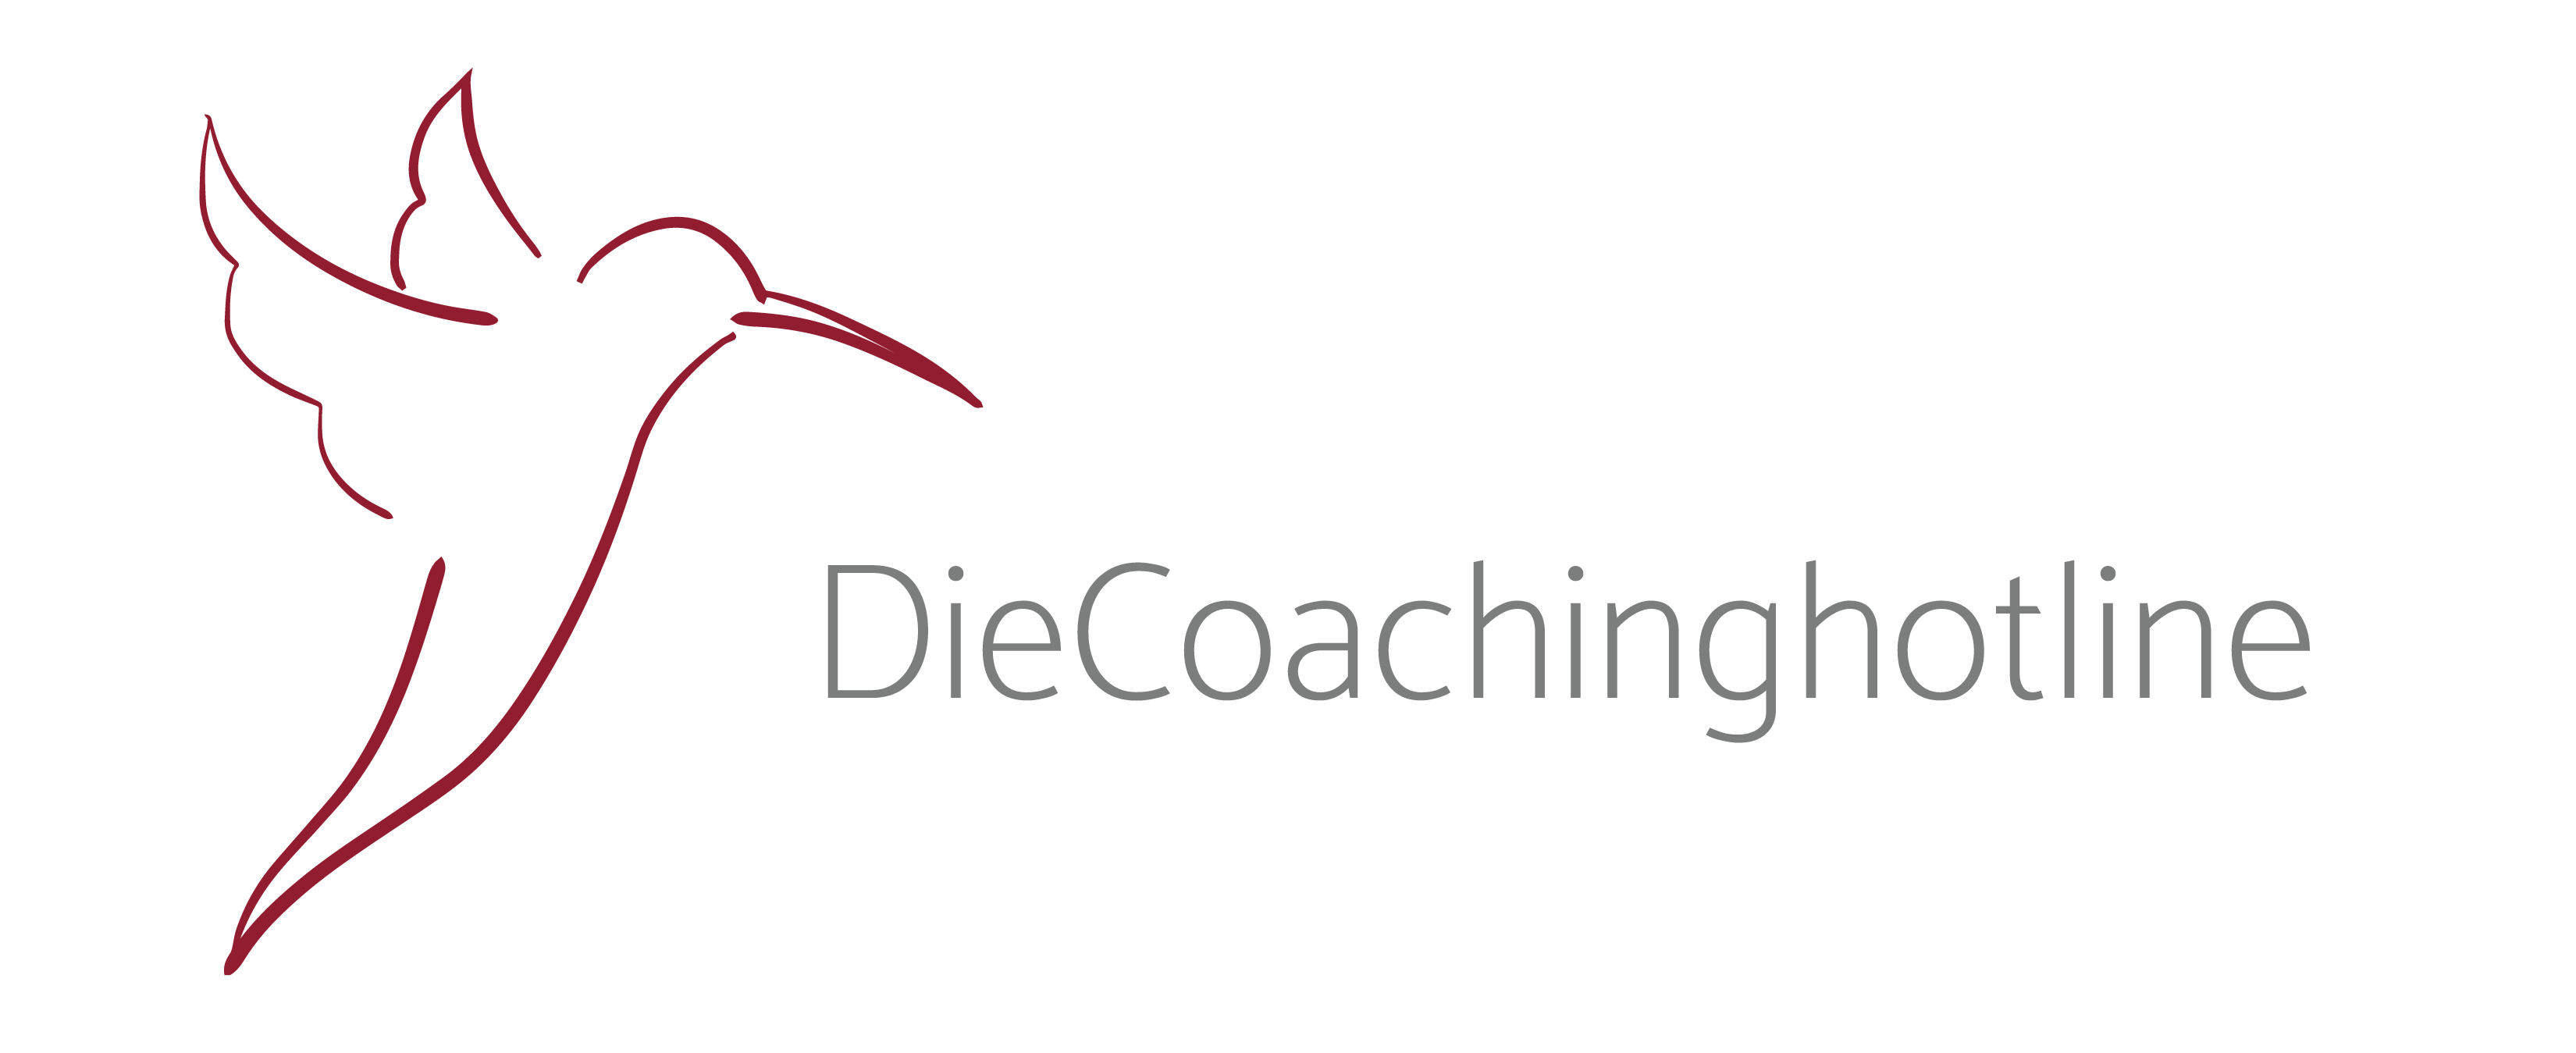 Die Coachinghotline